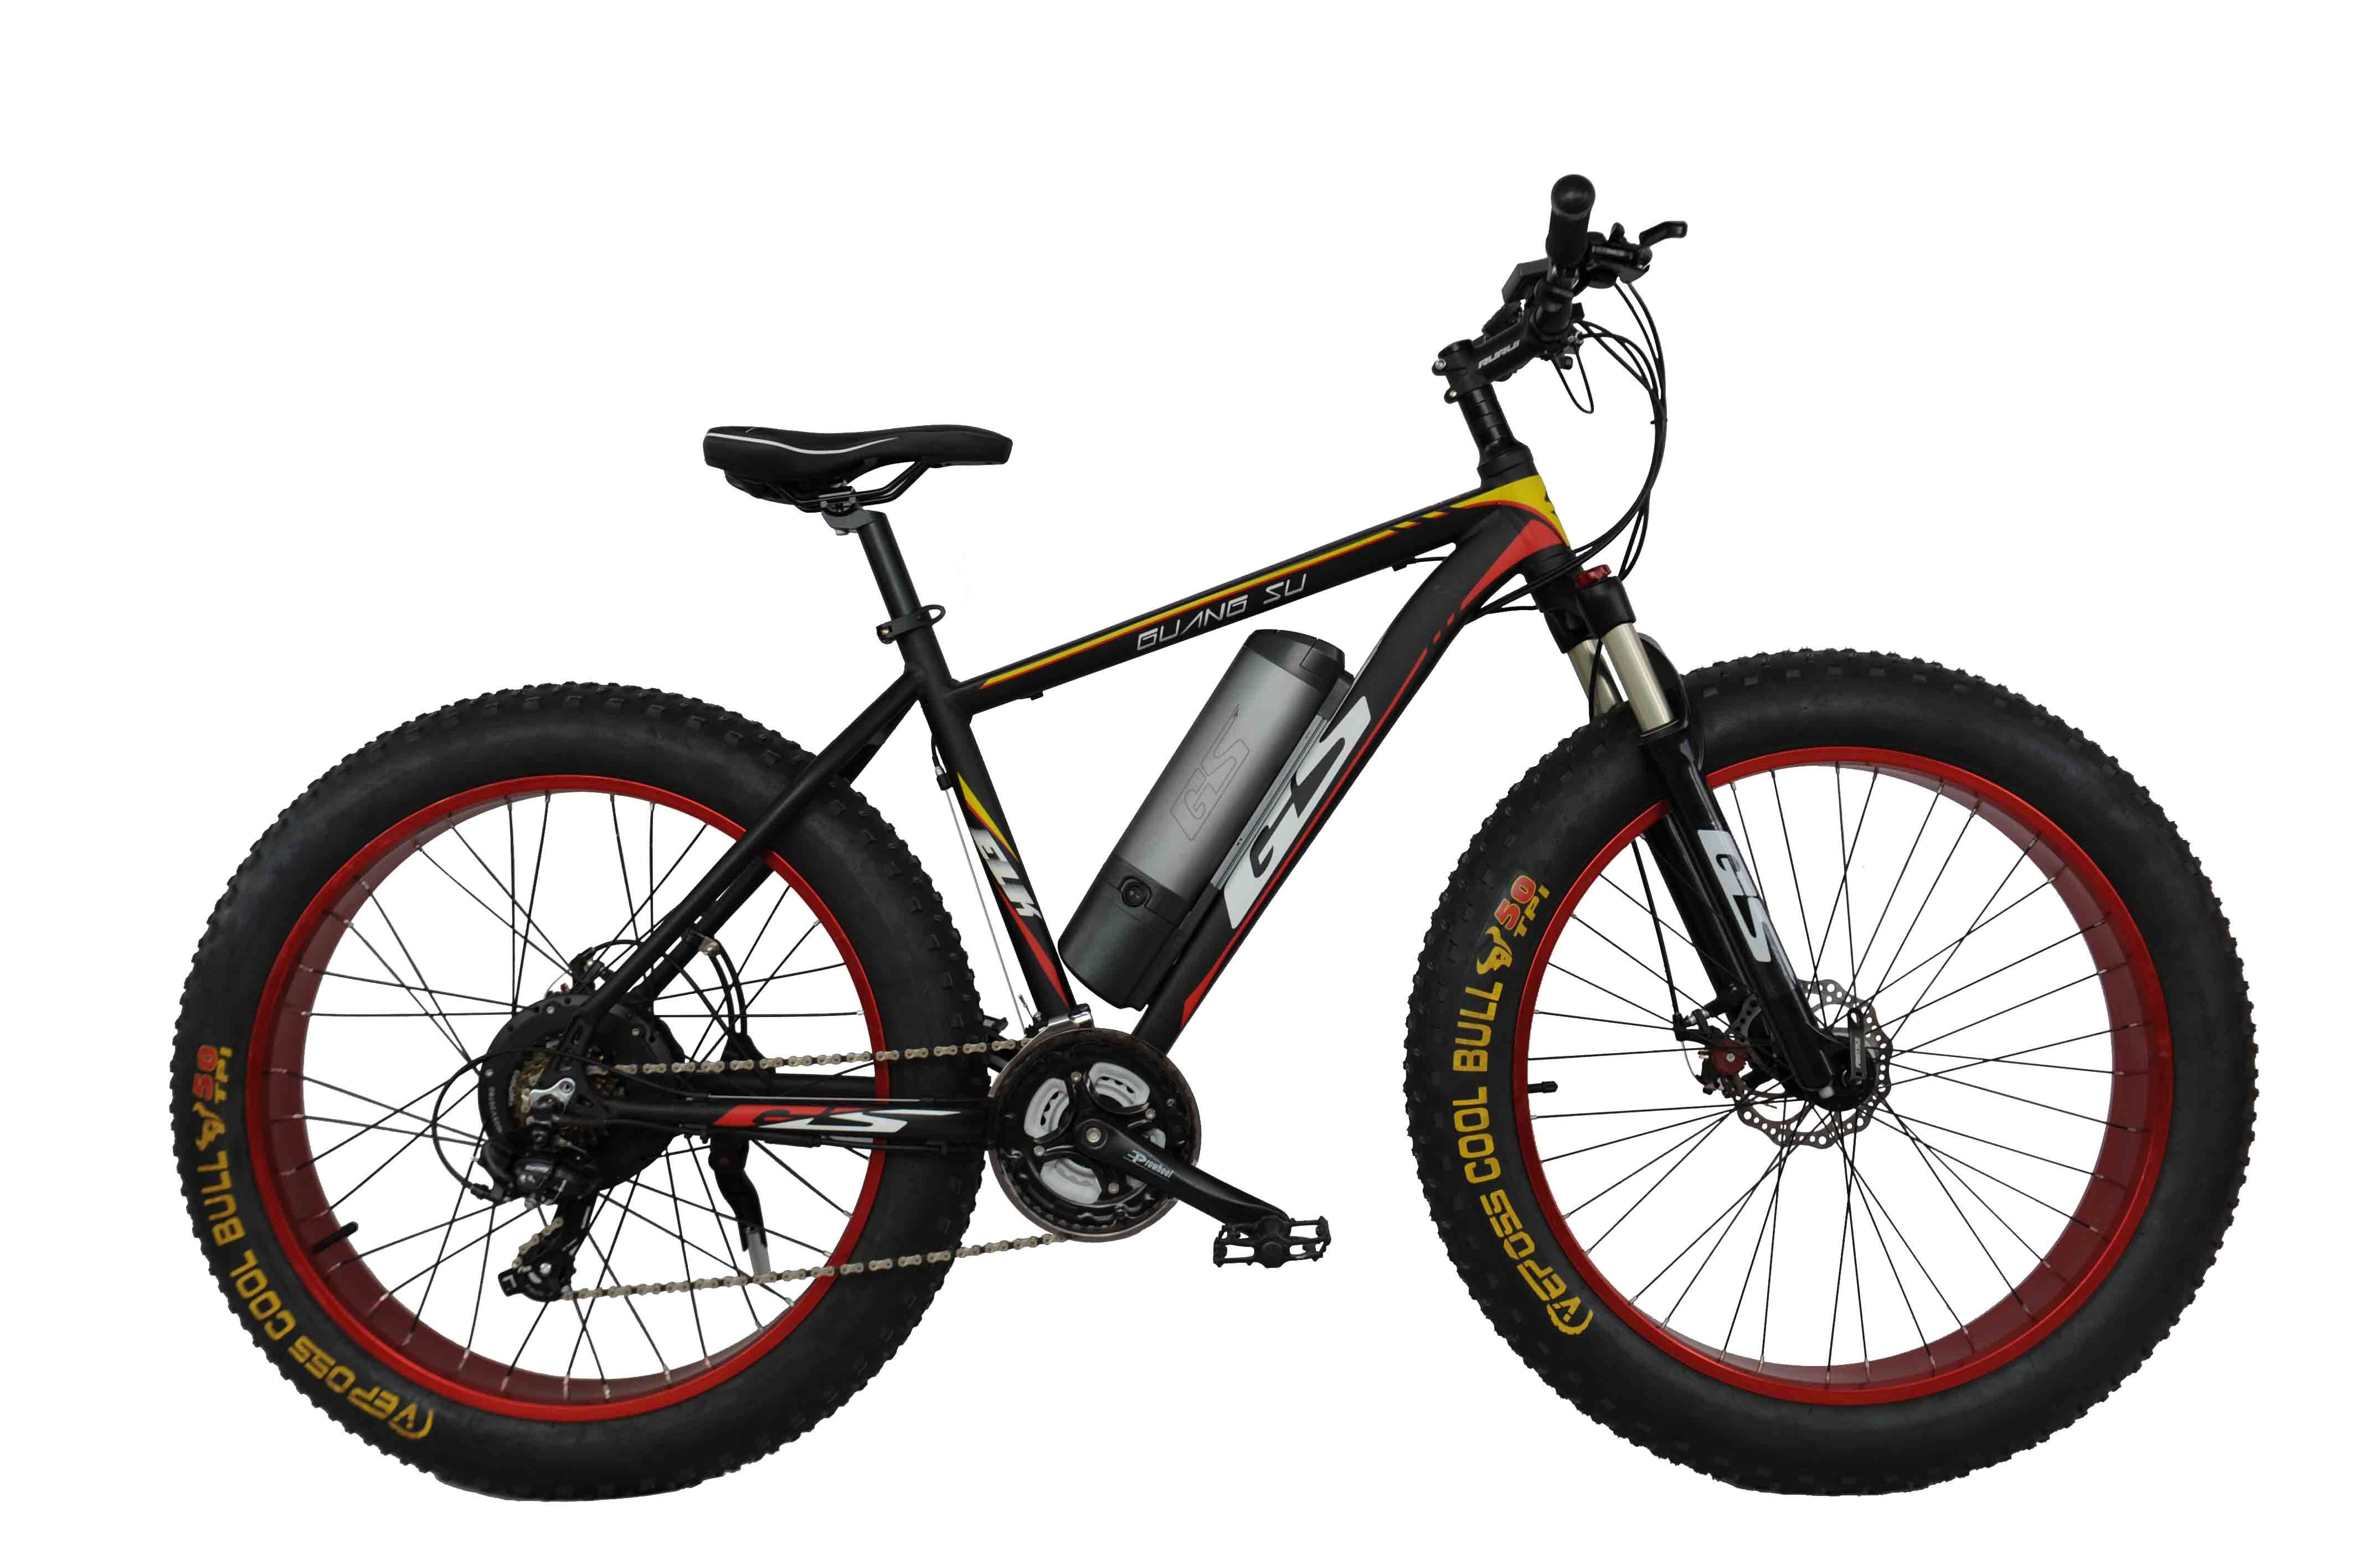 GS-009 36V 350W Fat Tyre Mountain Electric Bicycle